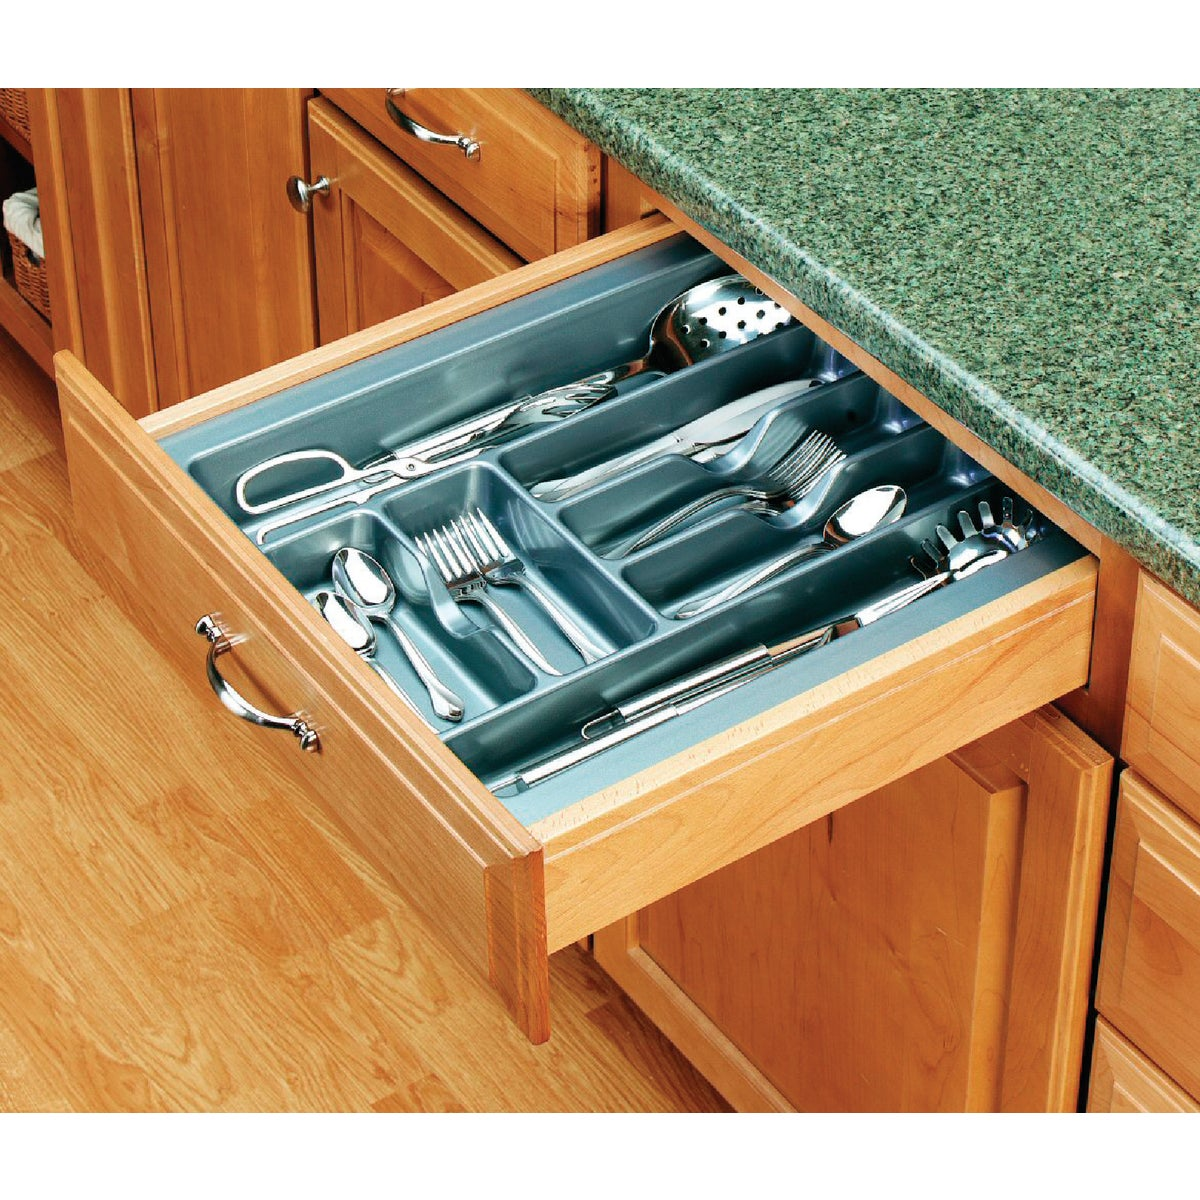 CUTLERY ORGANIZER - CT-3S-5 by Rev A Shelf